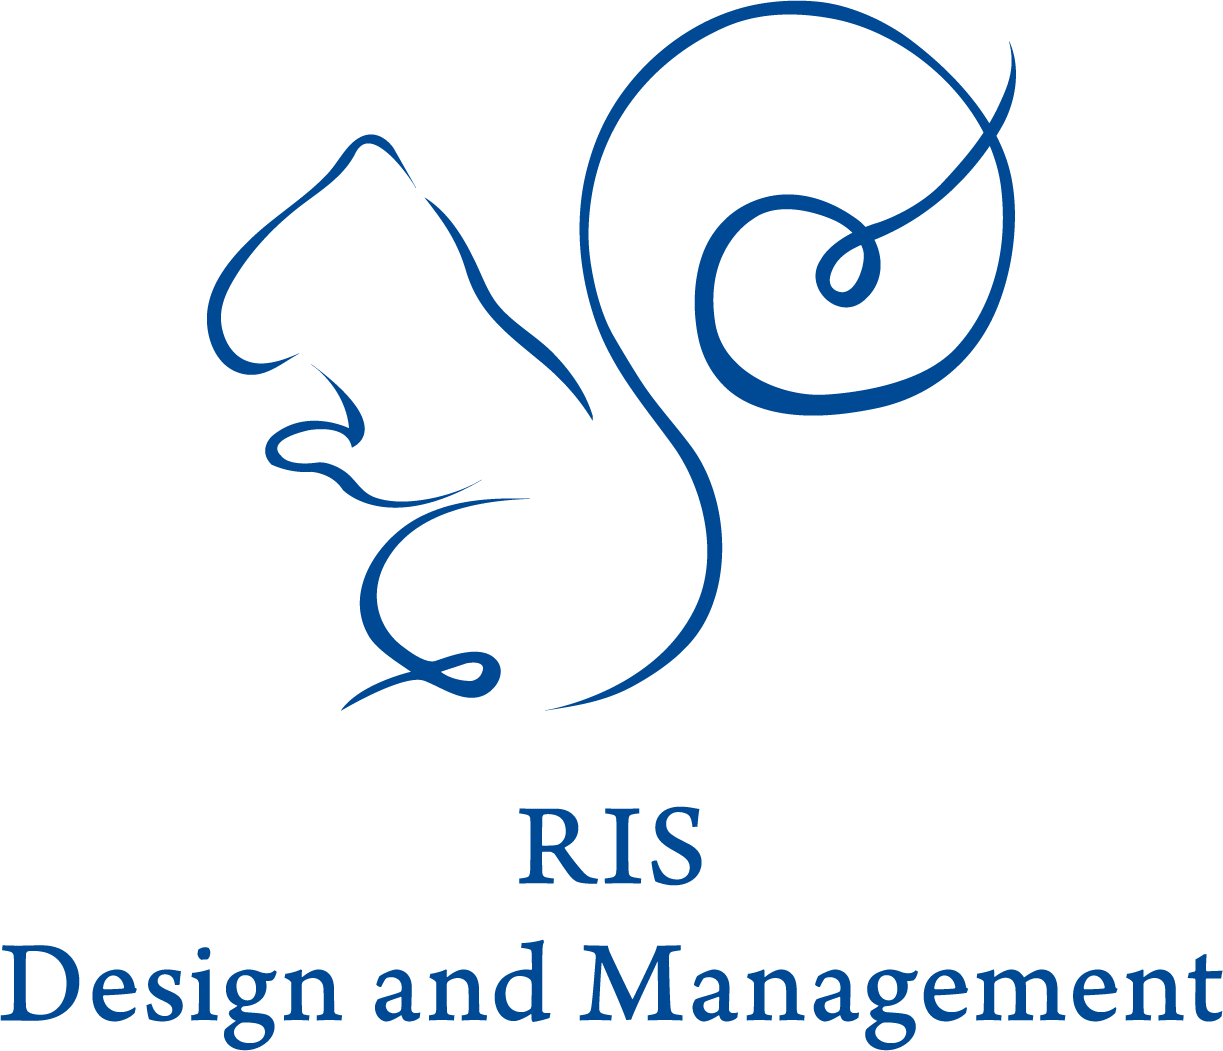 RIS Design and Management